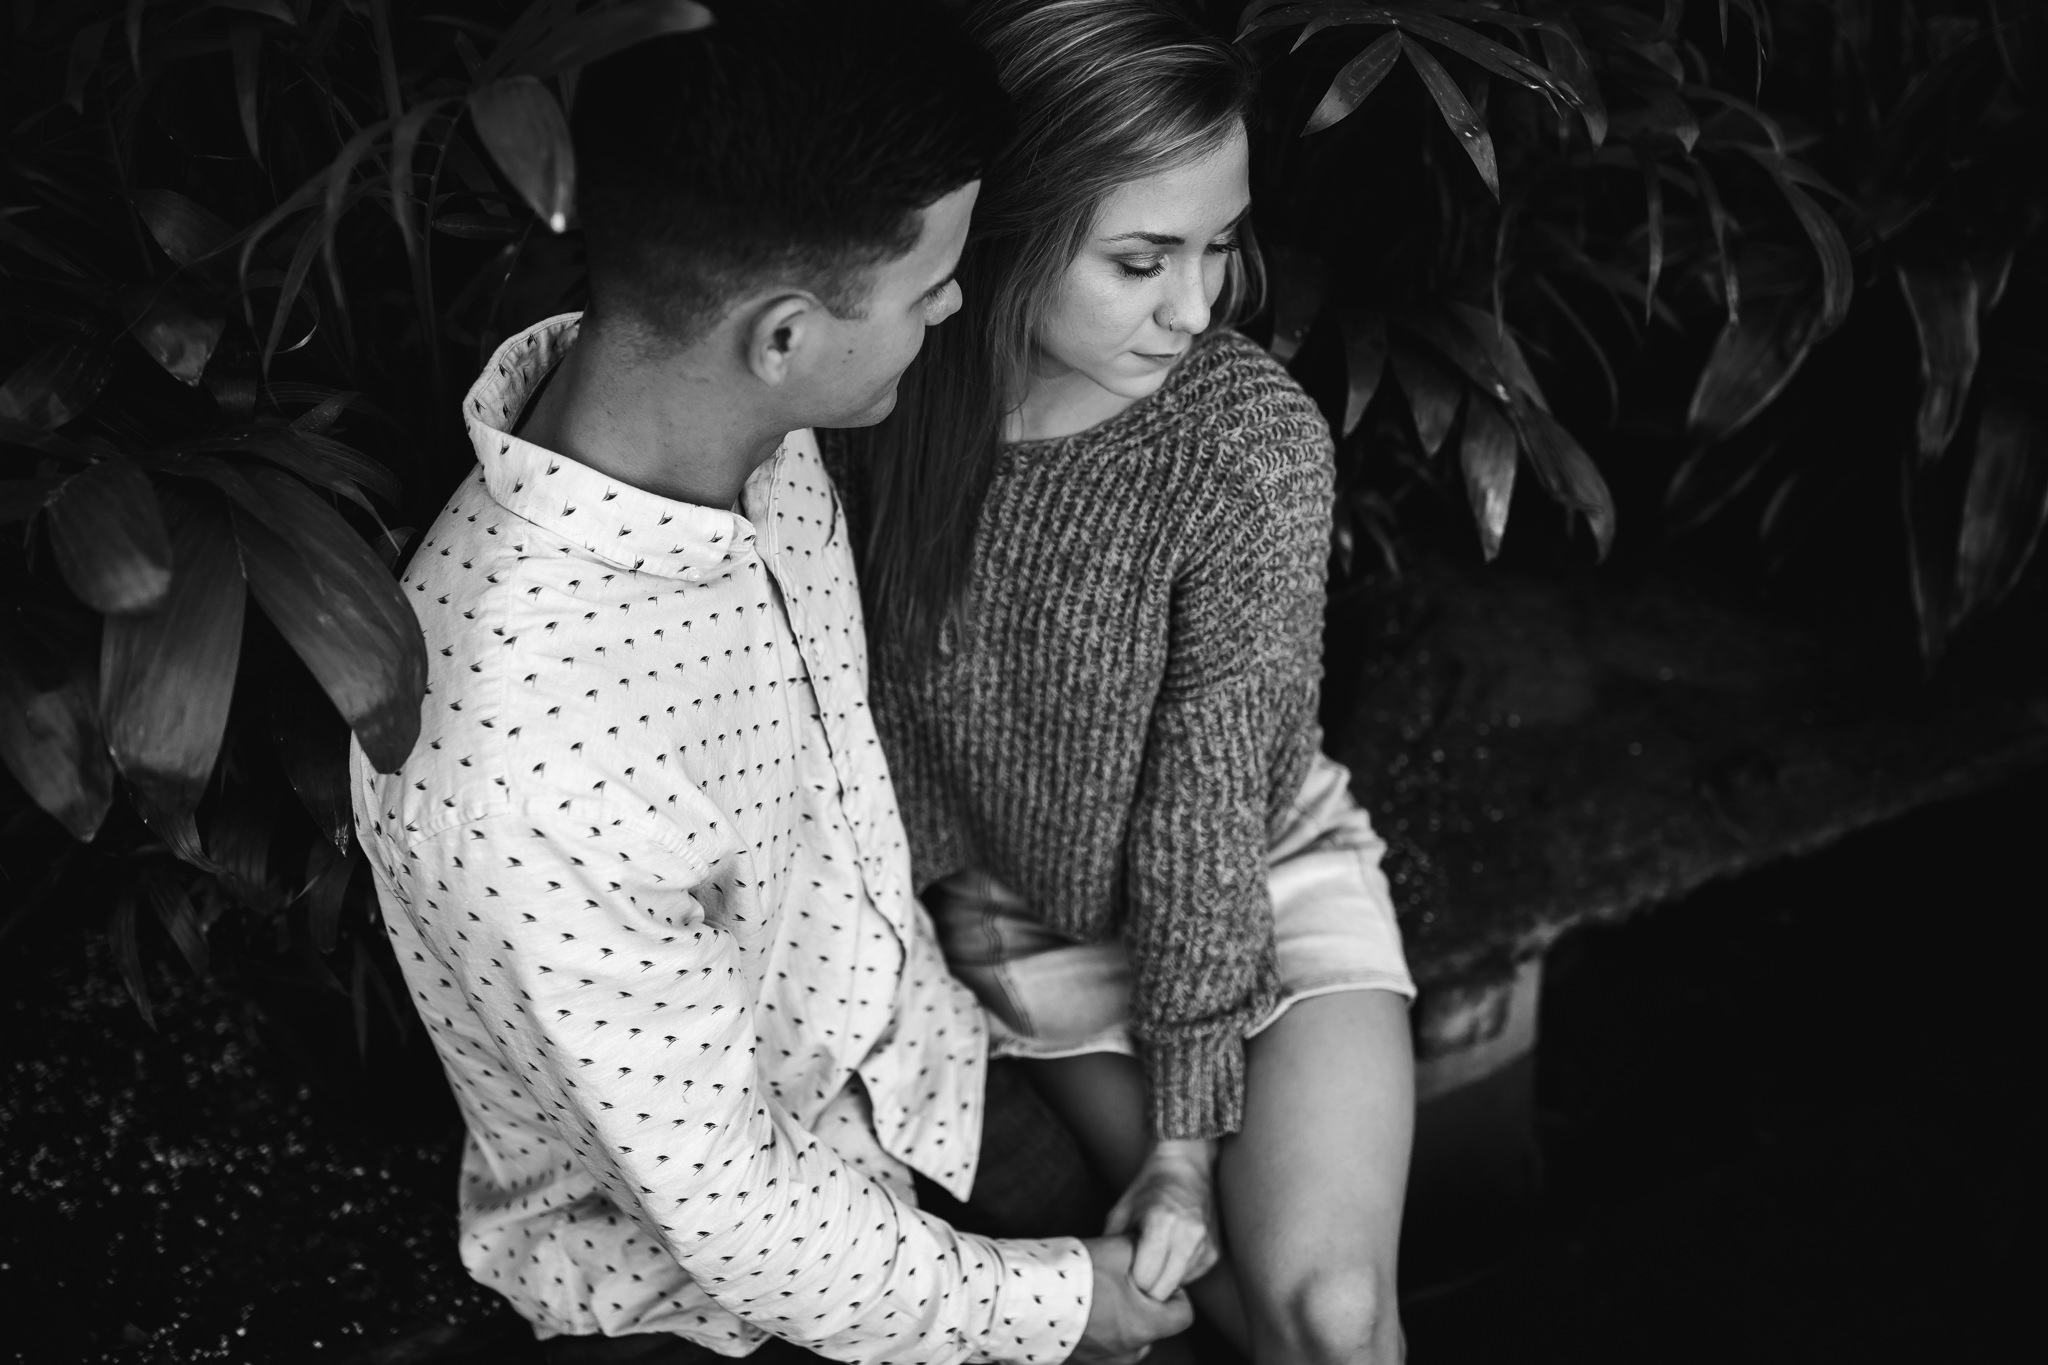 memphis-engagement-photographer-thewarmtharoundyou-greenhouse-engagement-pictures (14 of 118).jpg